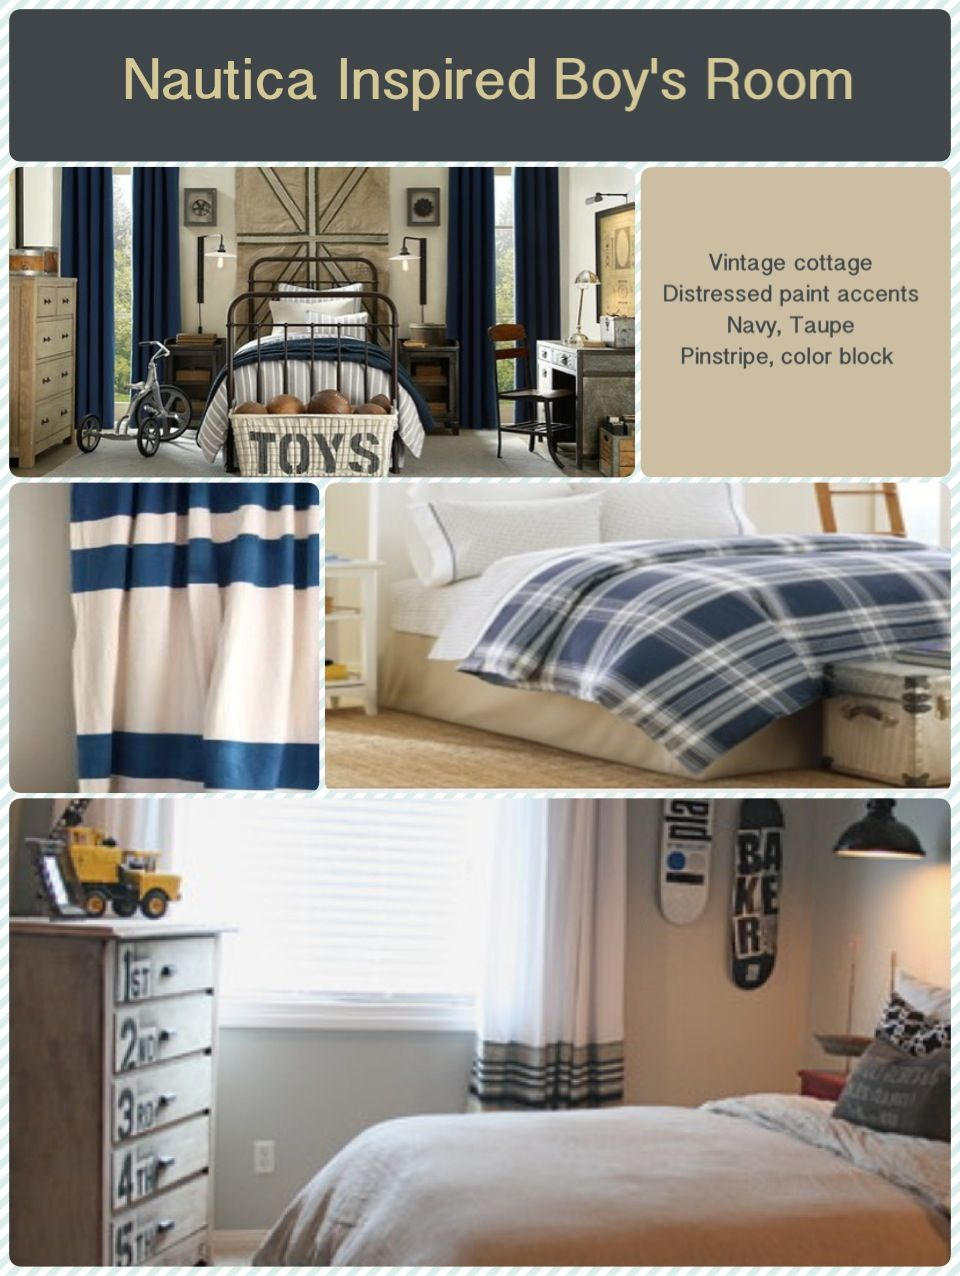 Navy and Taupe for a boy's room